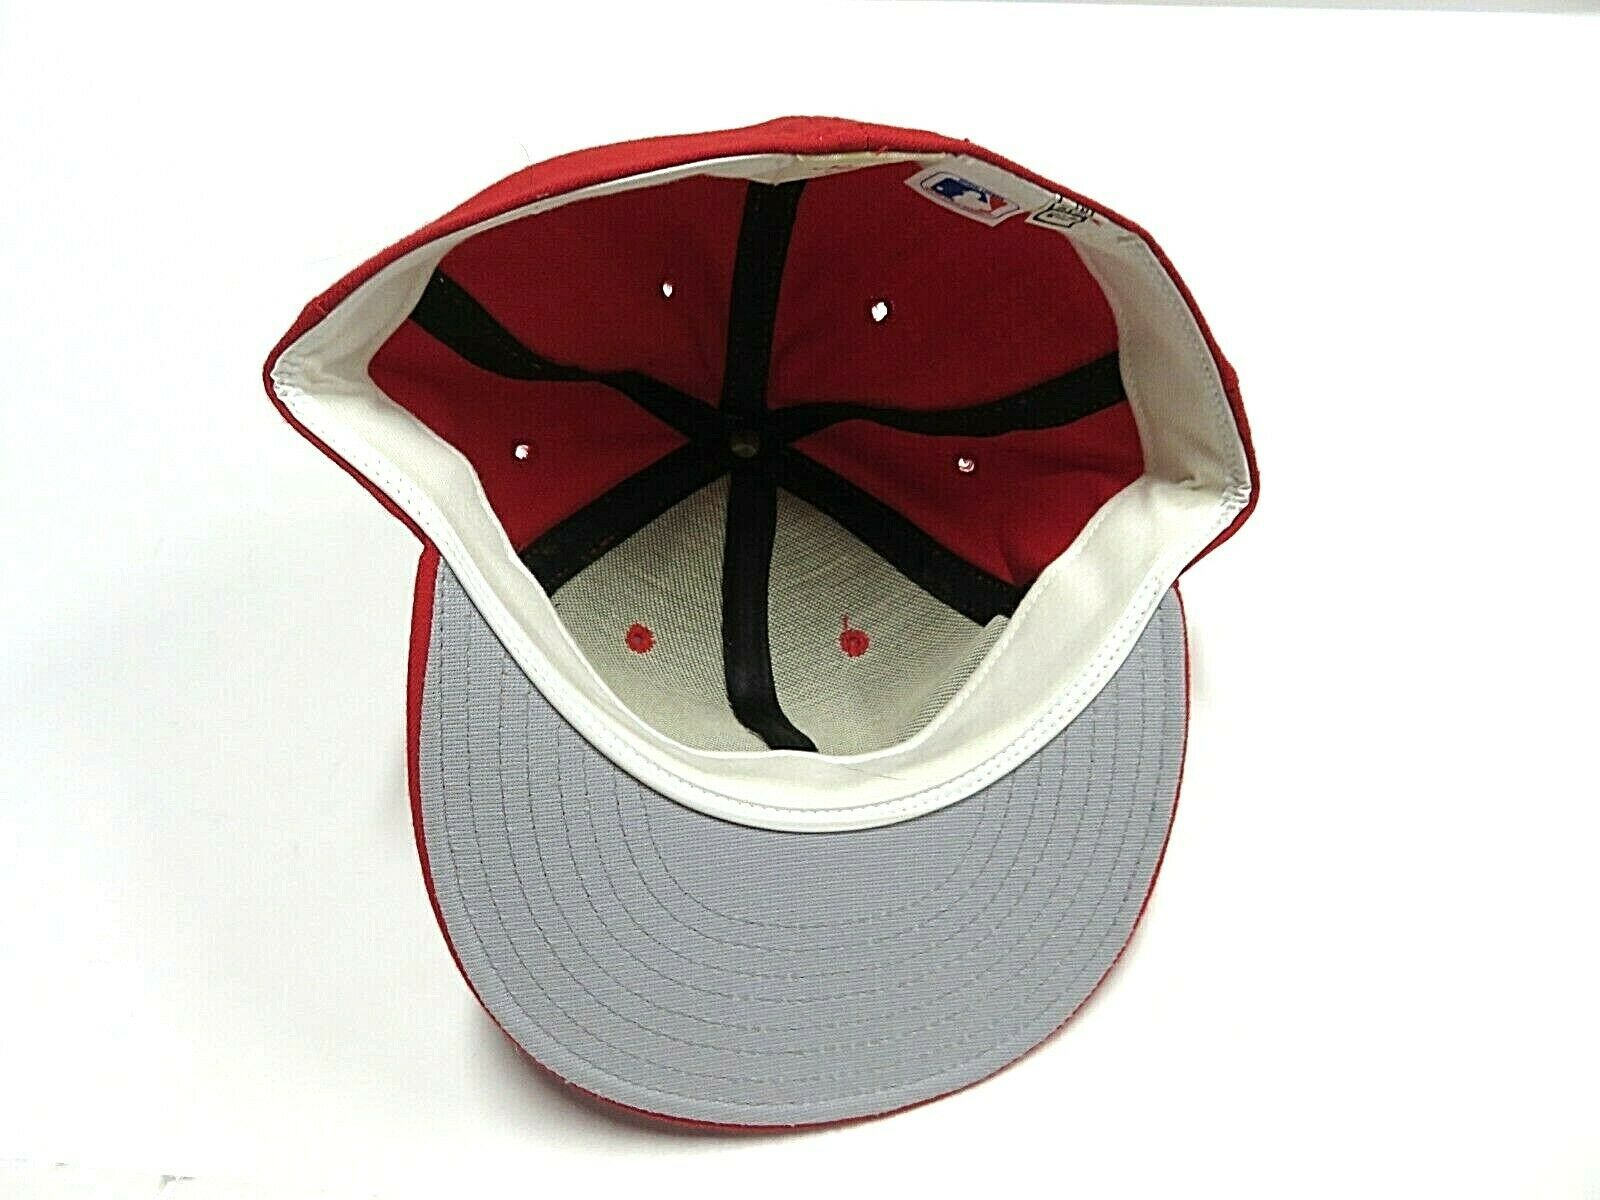 VTG New Era St.Louis Cardinals MLB Baseball Fitted Hat Adult Size 7 3/4 USA Made image 4